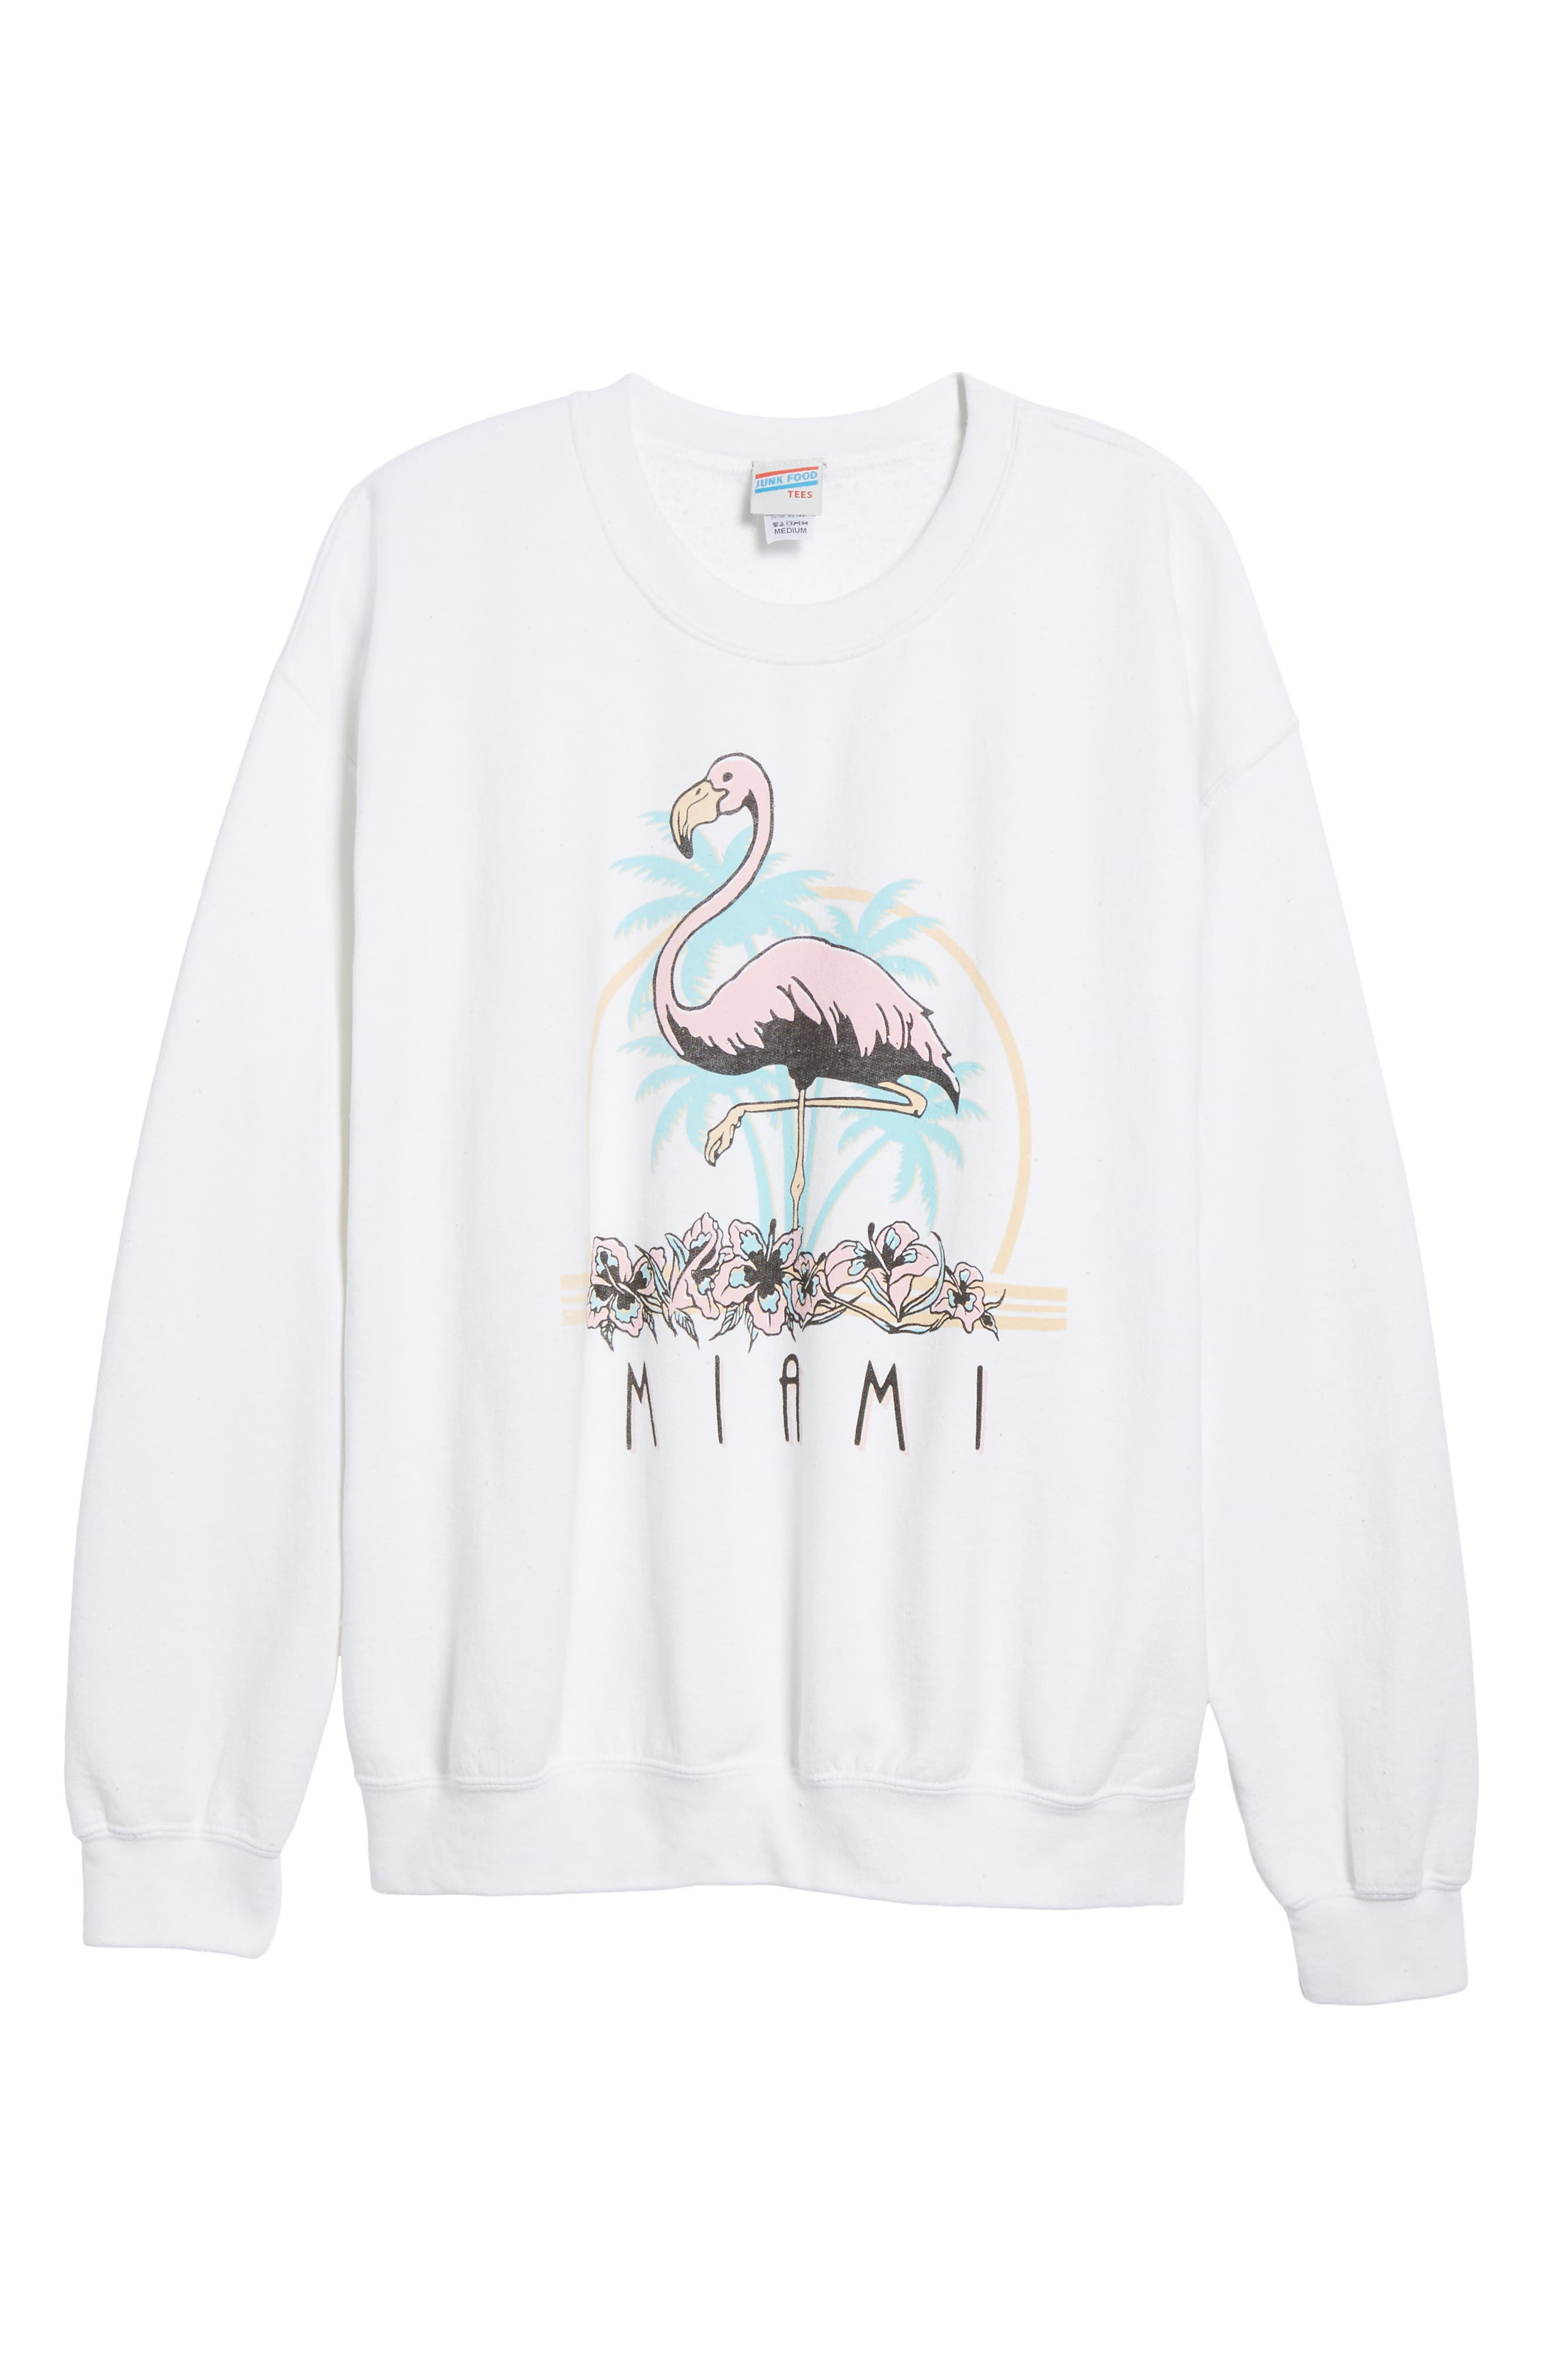 Miami Sweatshirt,                             Alternate thumbnail 6, color,                             100